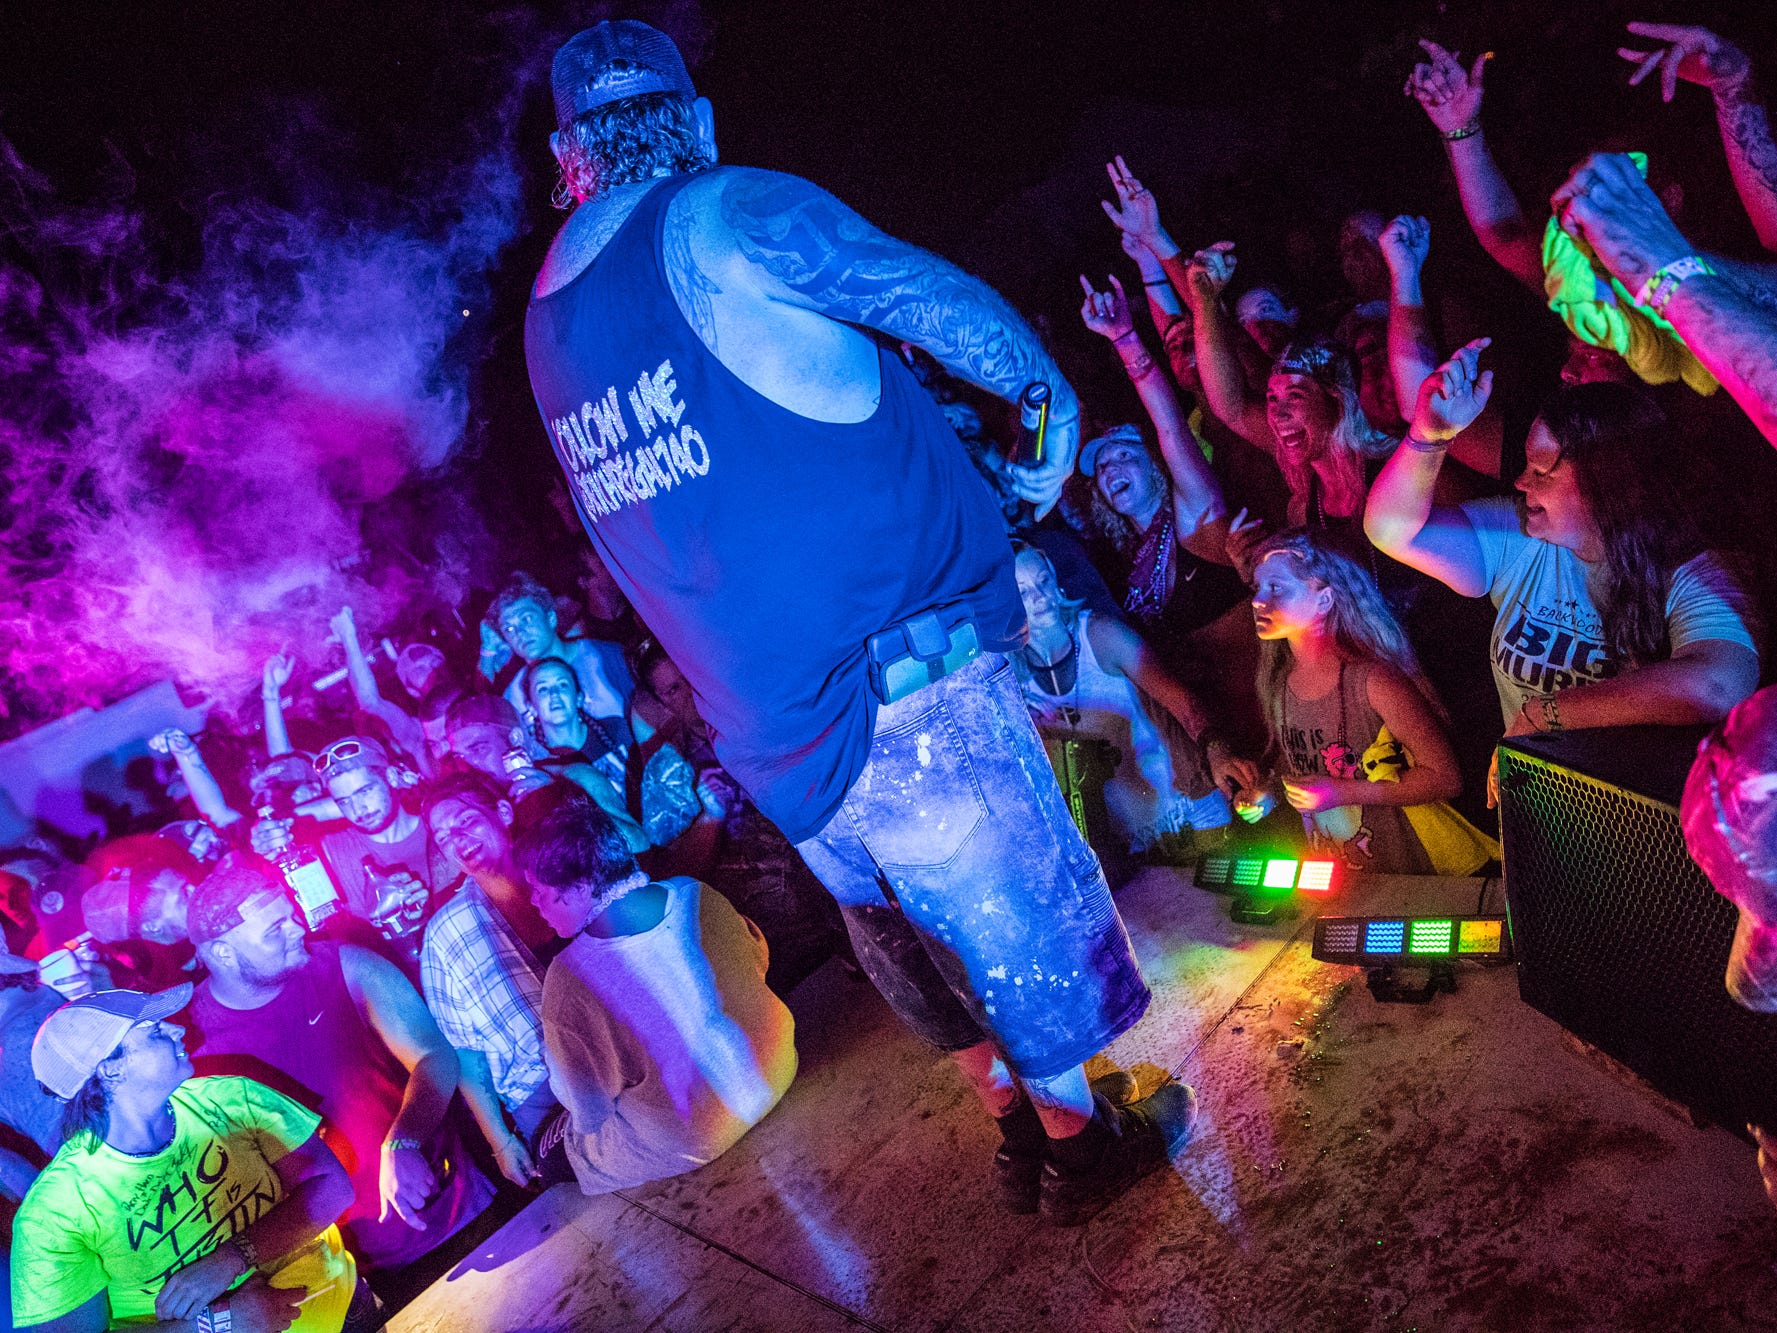 Rich Regal performs during the Redneck Rave at BlackSwan Mudpit in Medora, Ind., on Friday, July 20, 2018.